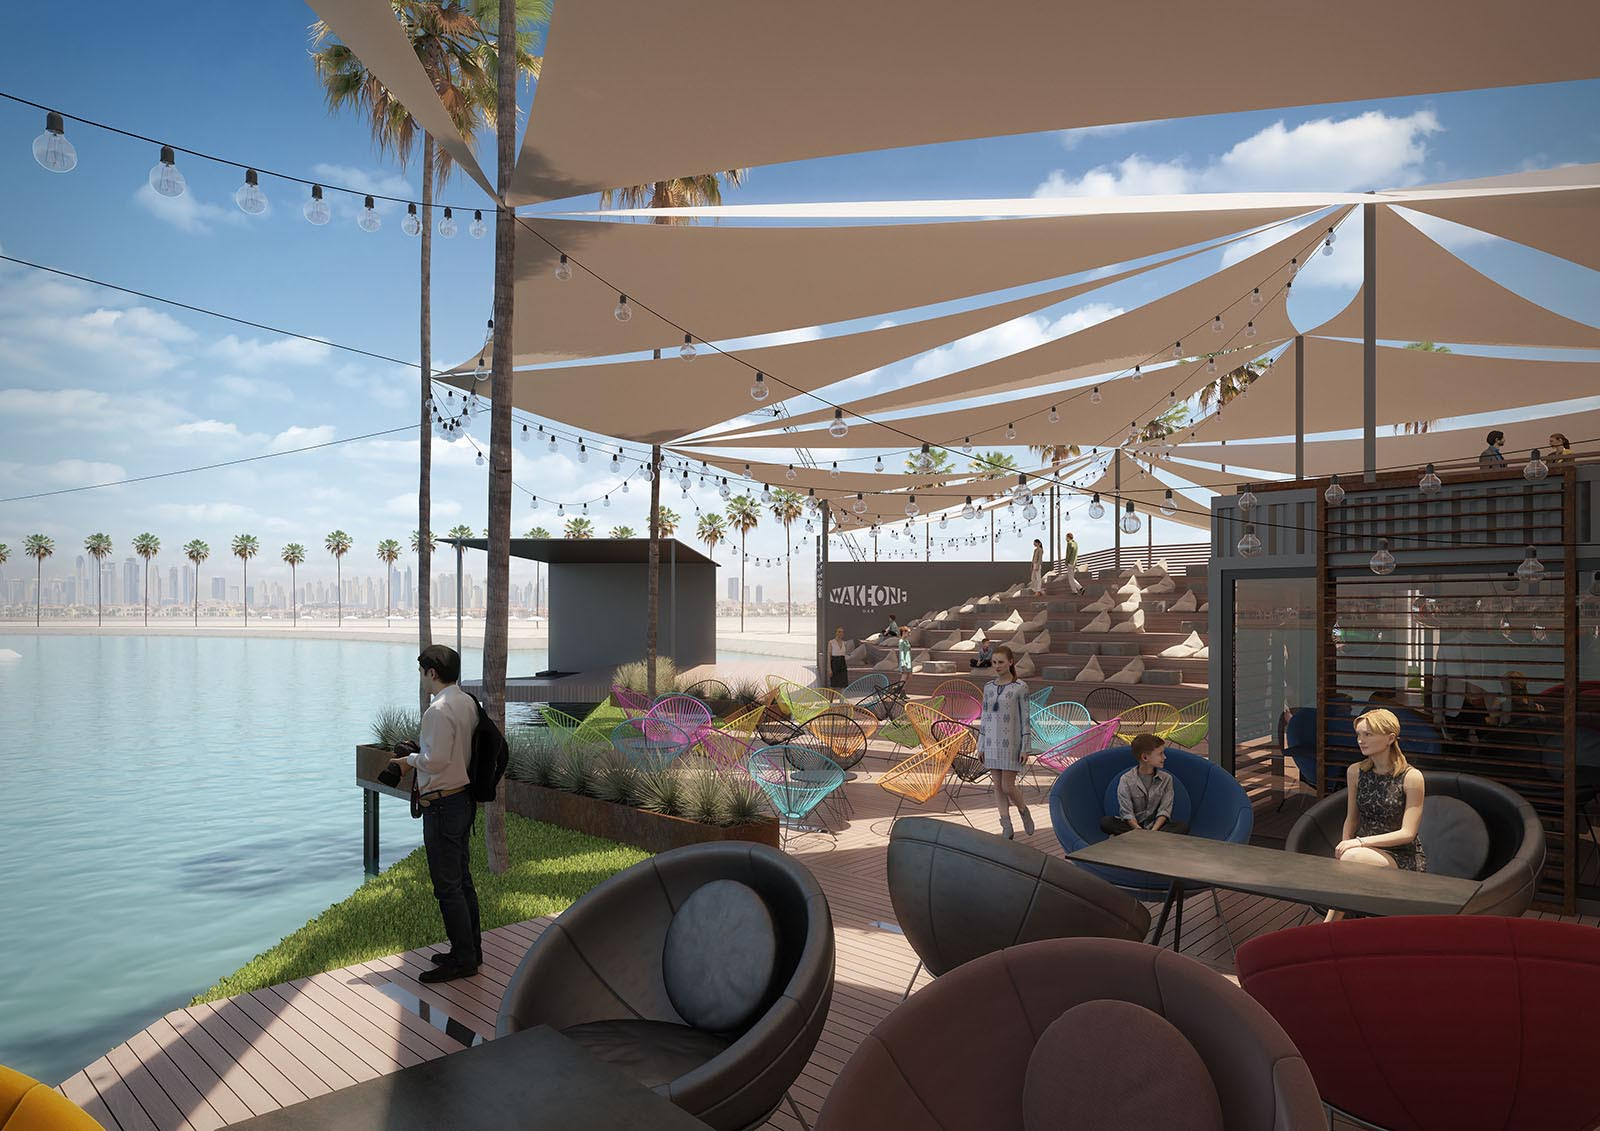 Visualization of a wakeboard park project in Dubai.